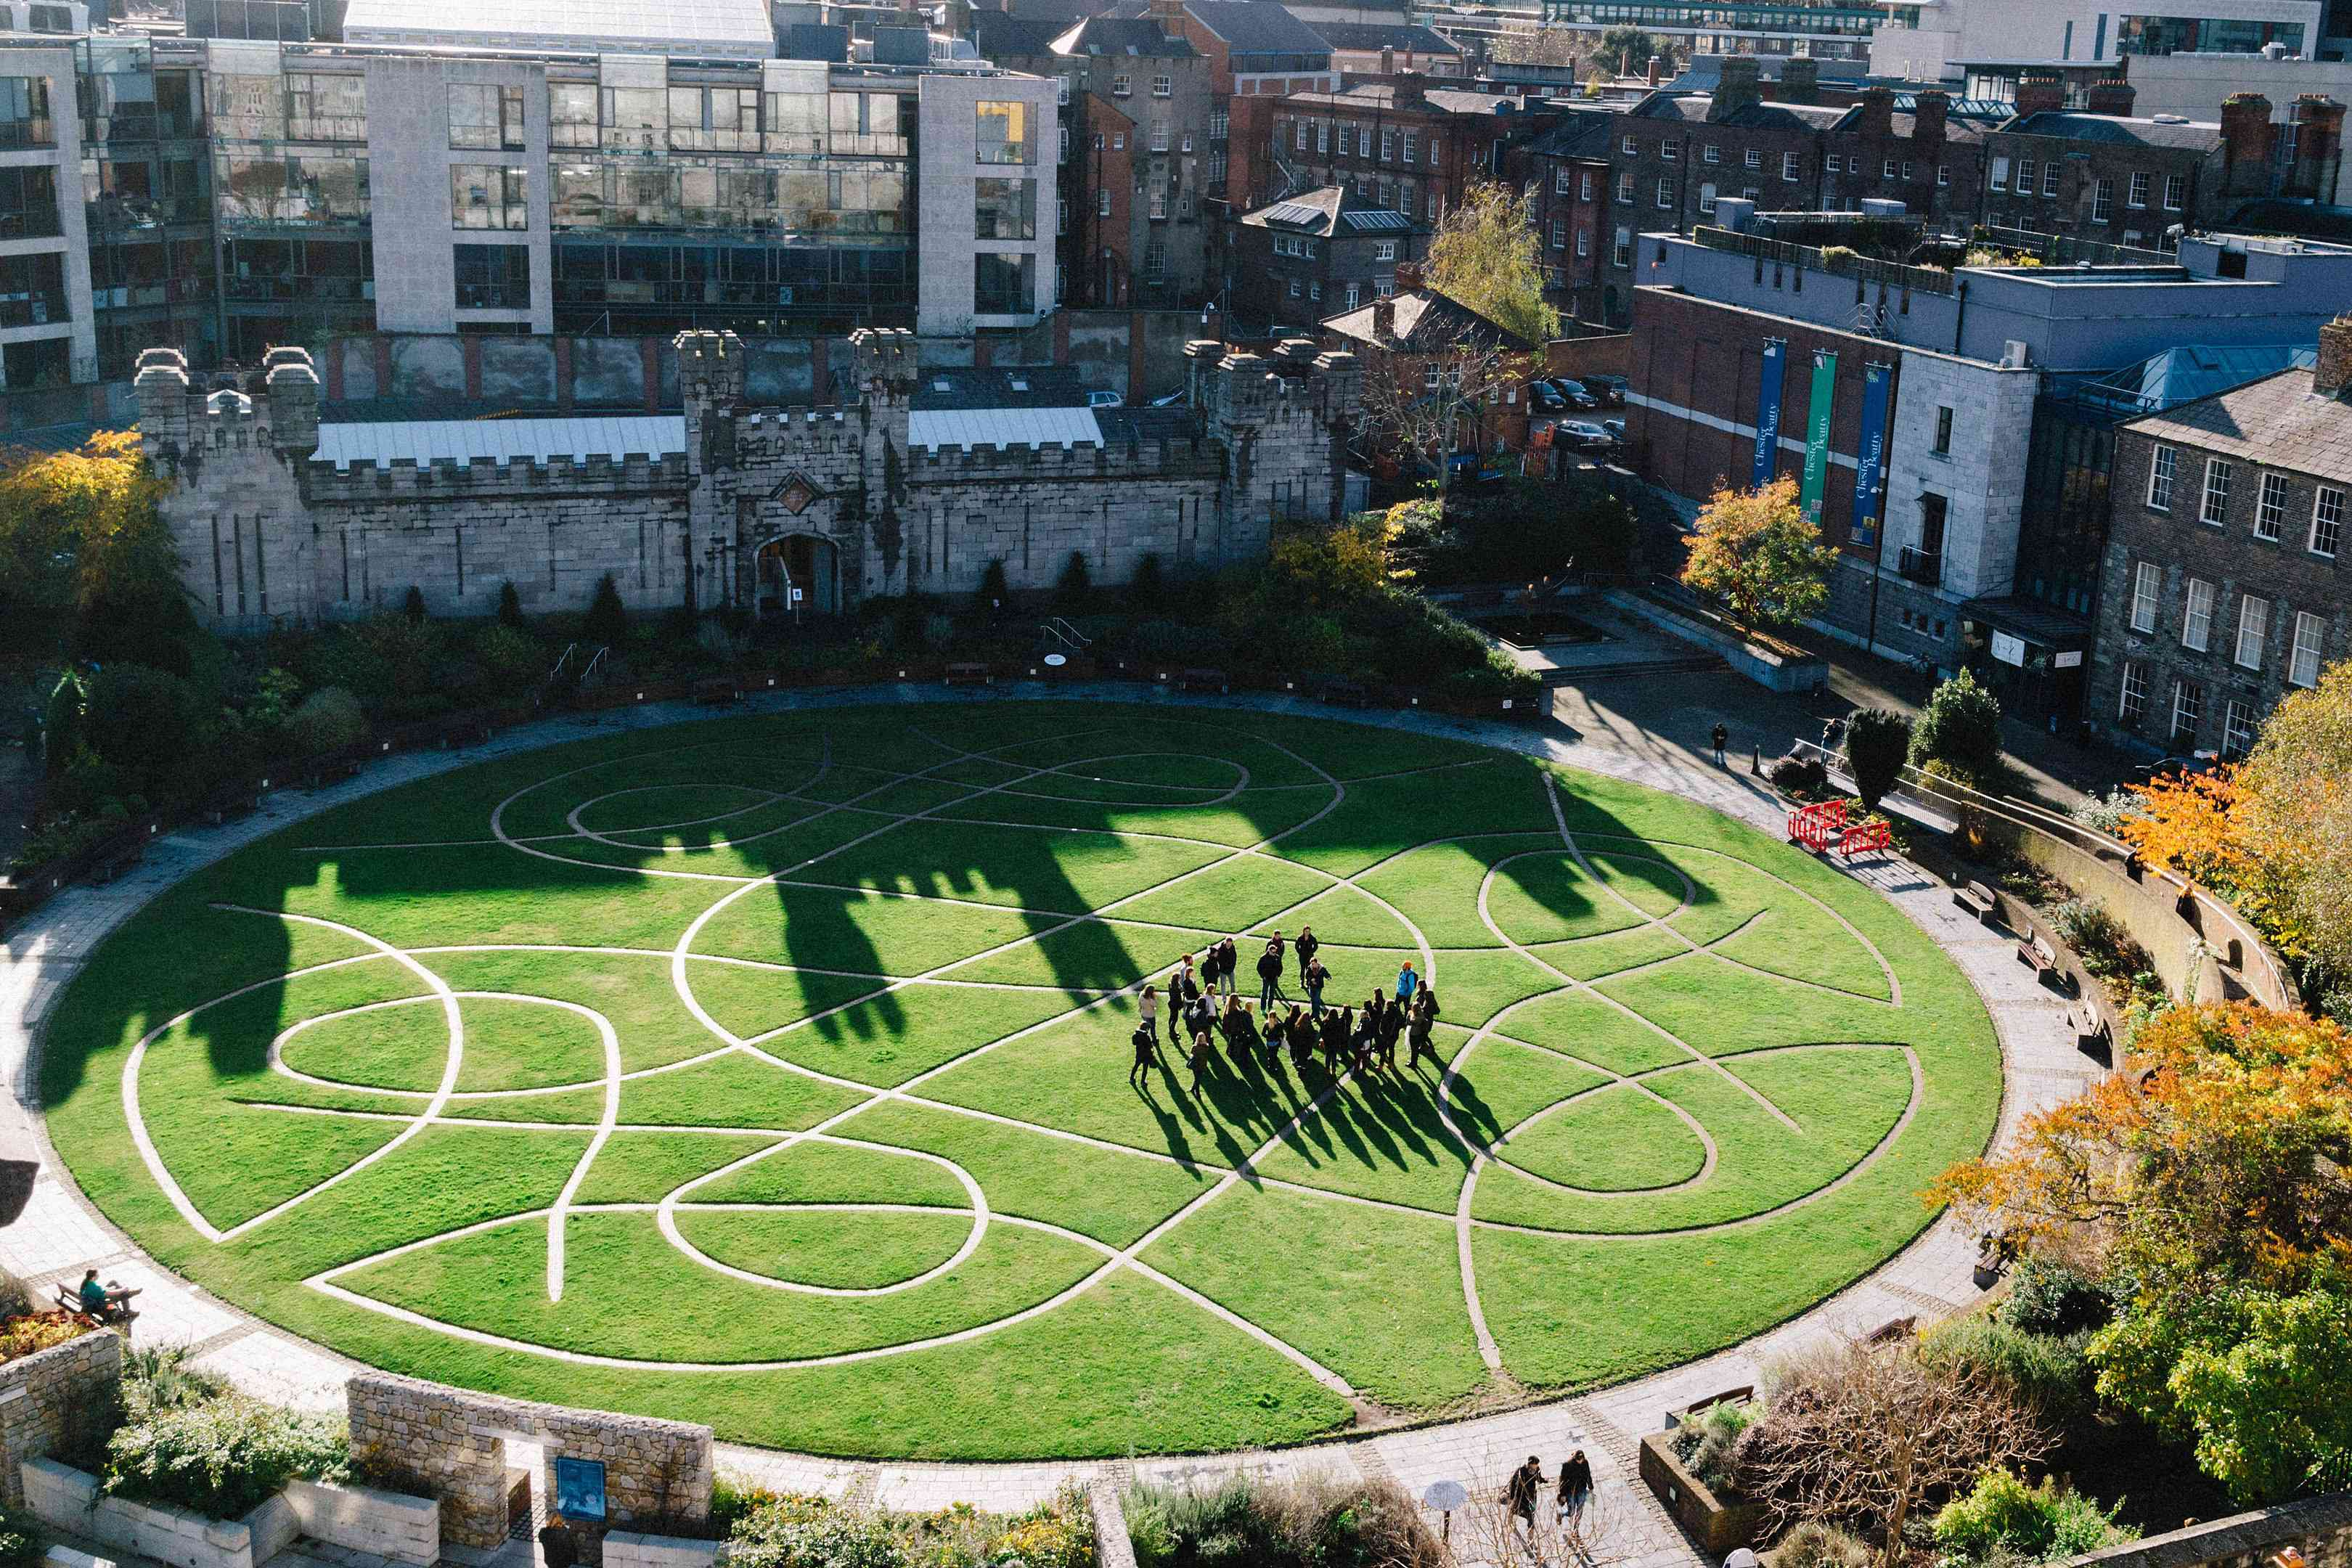 An overhead shot of a green lawn with a Celtic-inspired pattern of walkways